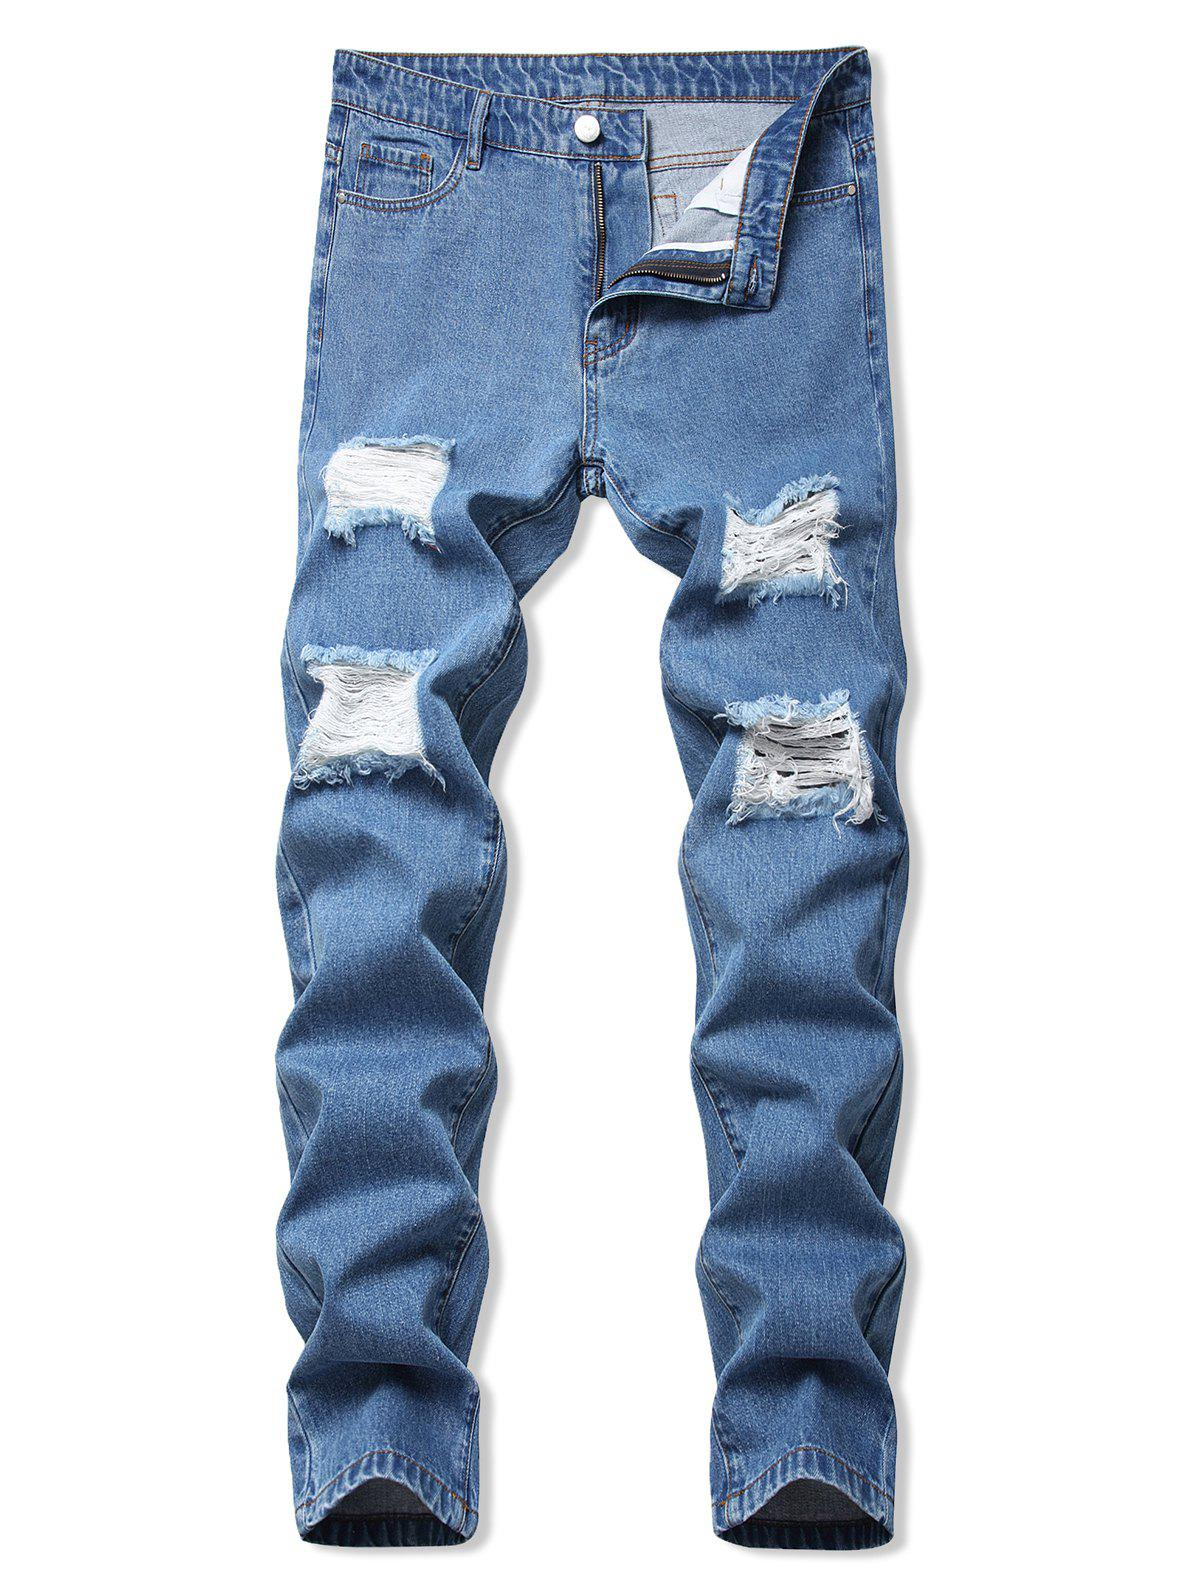 Zipper Fly Ladder Distressed Jeans - BLUE 40